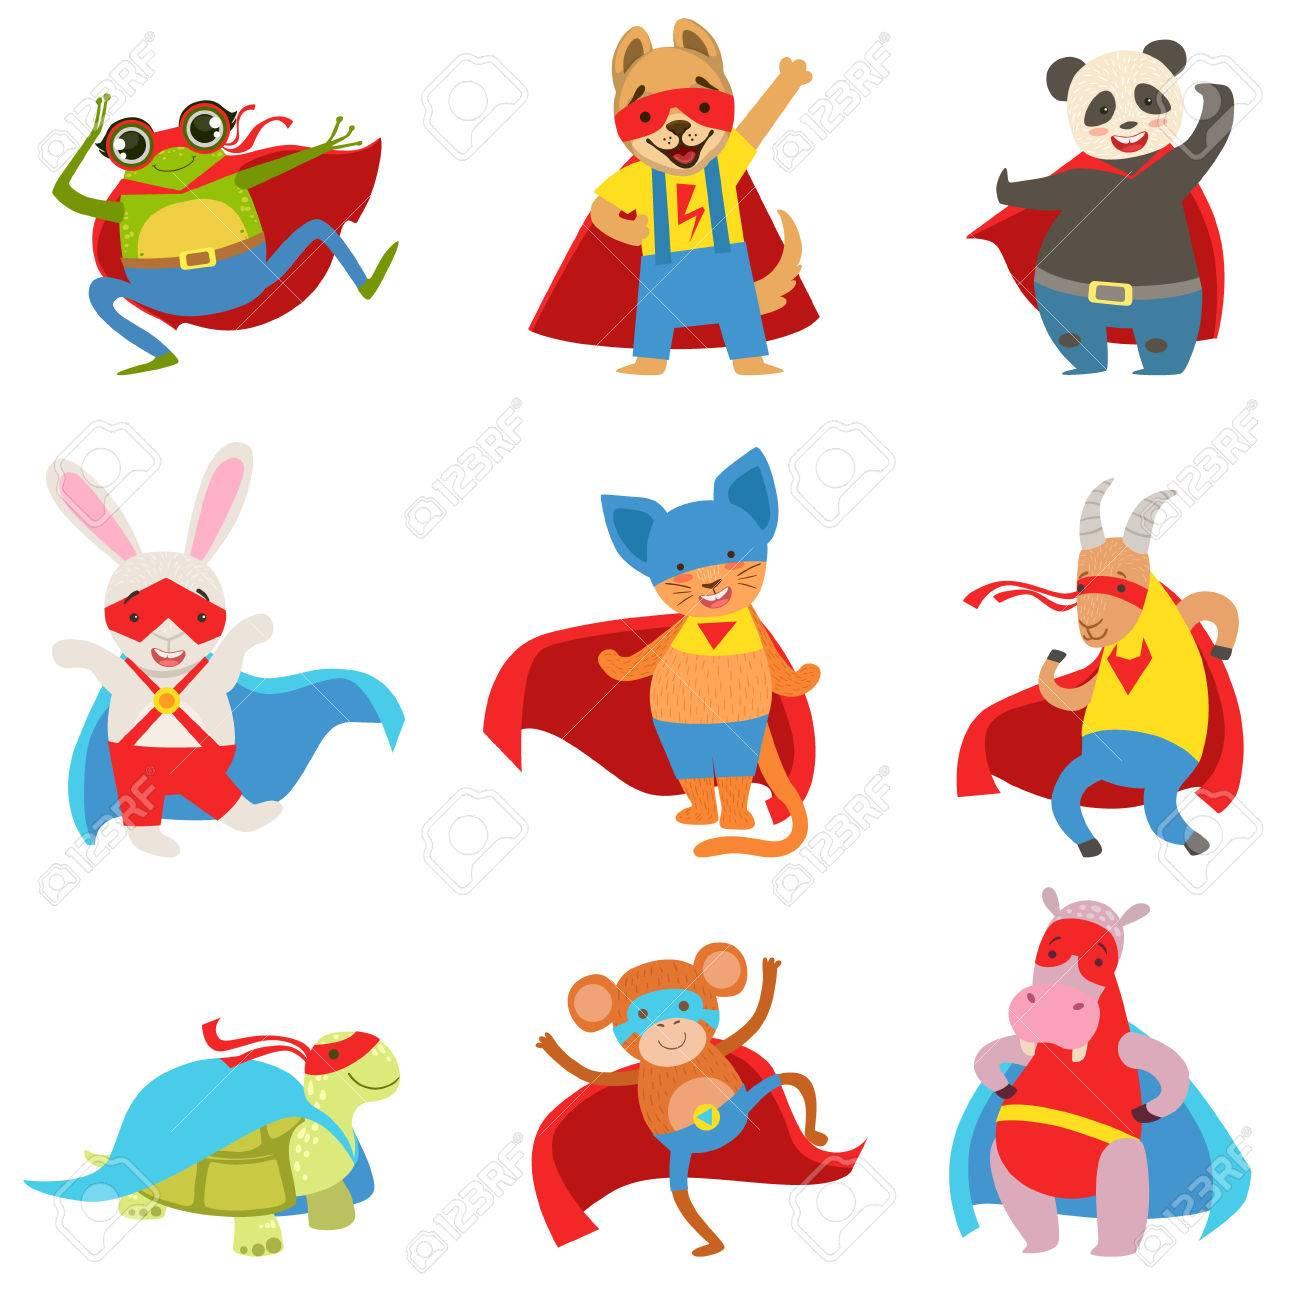 Animals dressed as superheroes with capes and masks set childish flat comic characters isolated on